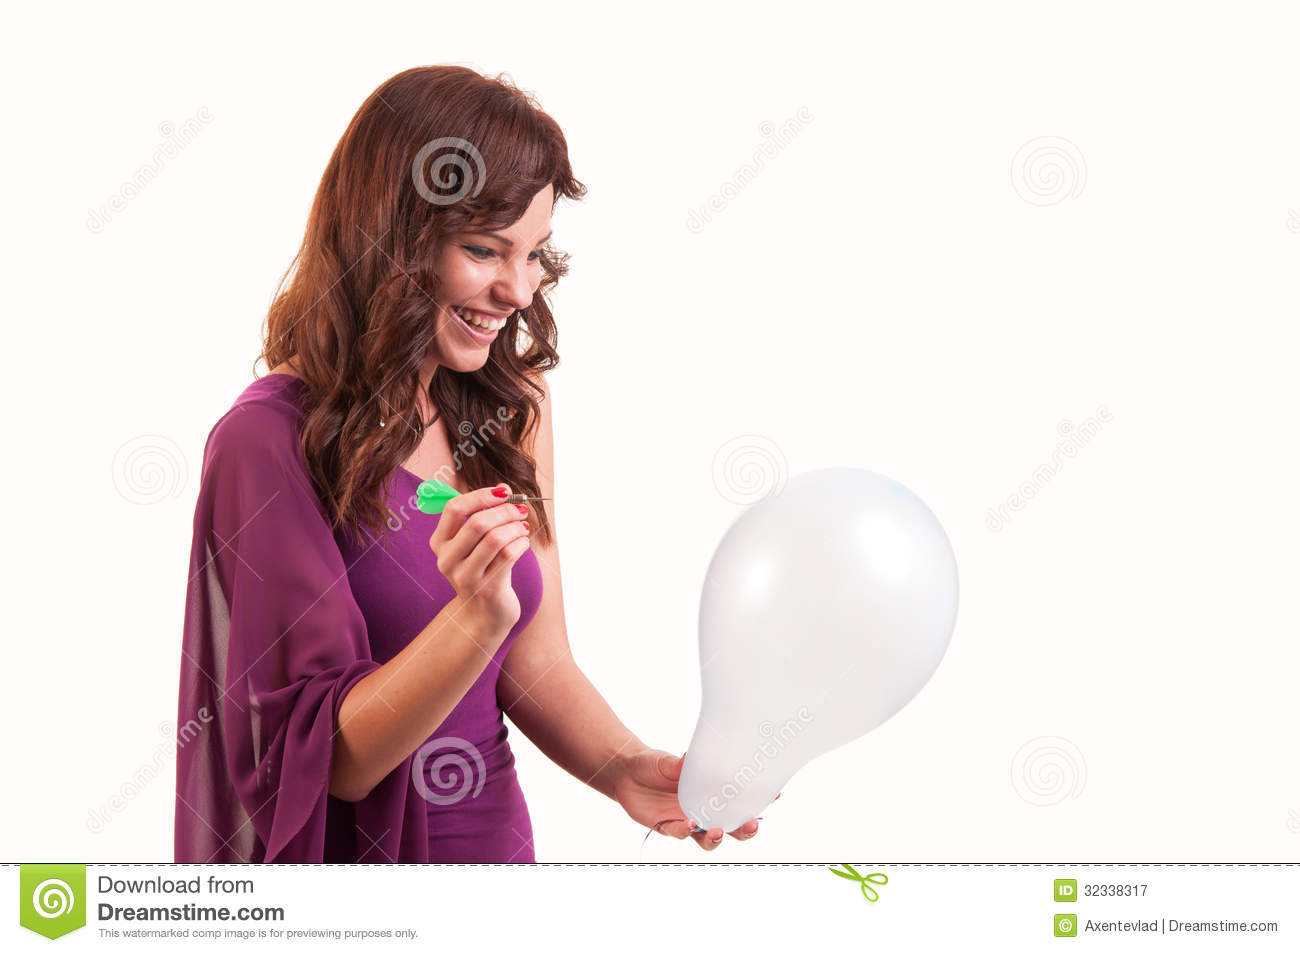 Happy young girl is going to break a balloon with a dart